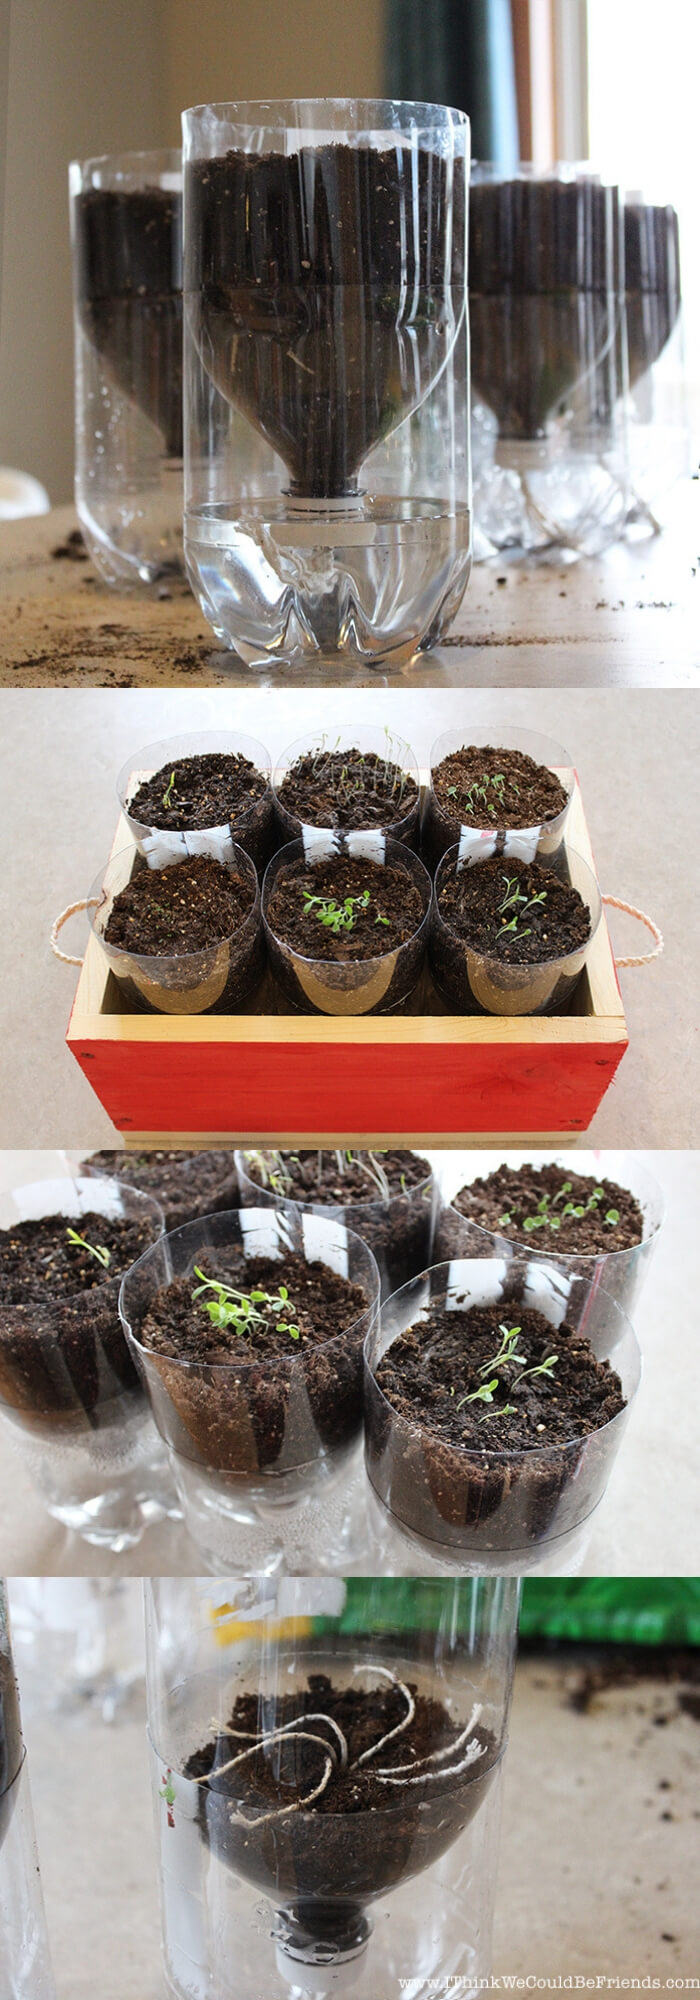 Self watering Herb garden | Best DIY Self-Watering System Ideas